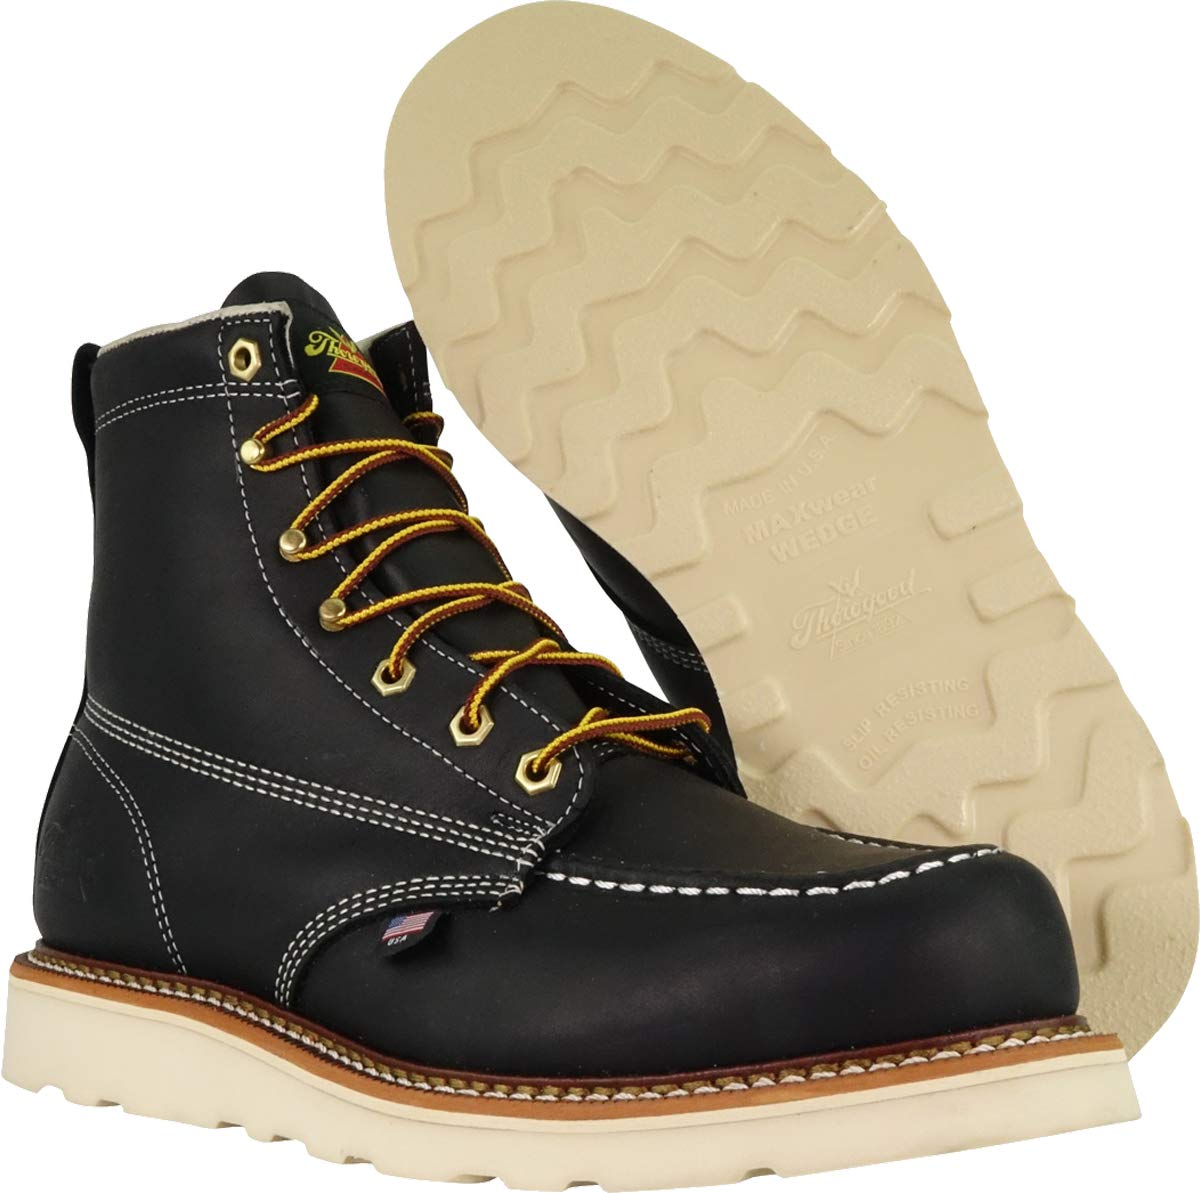 Thorogood-American-Heritage-Men-039-s-6-034-Moc-Toe-Max-Wedge-Non-Safety-Boots thumbnail 5